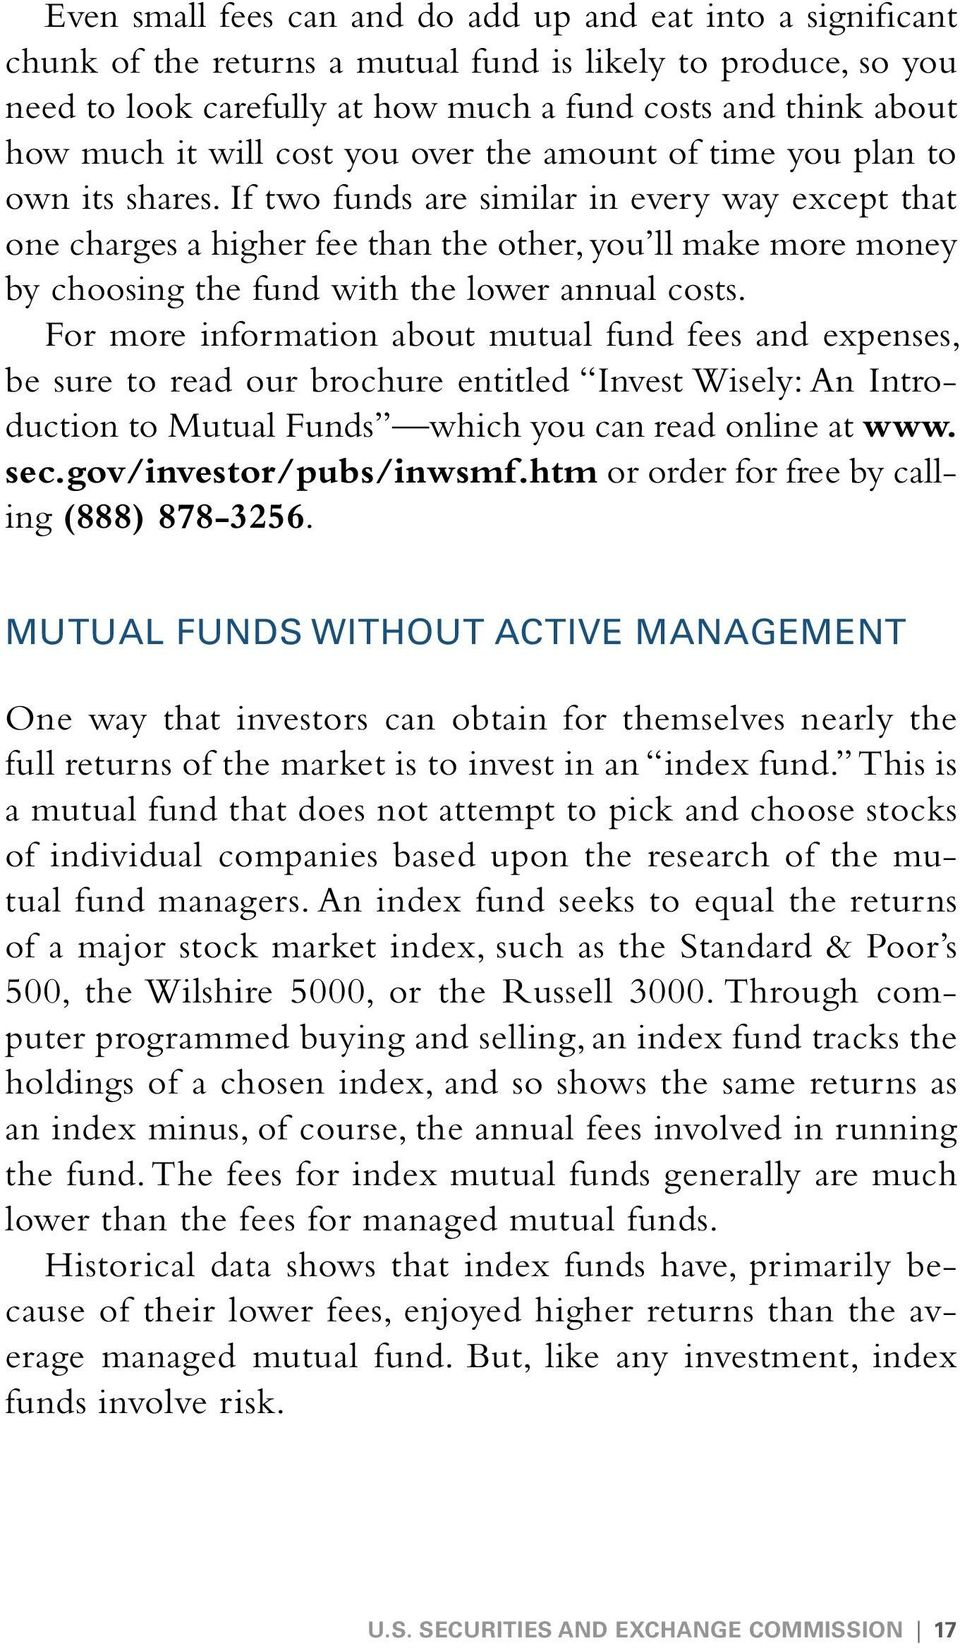 If two funds are similar in every way except that one charges a higher fee than the other, you ll make more money by choosing the fund with the lower annual costs.